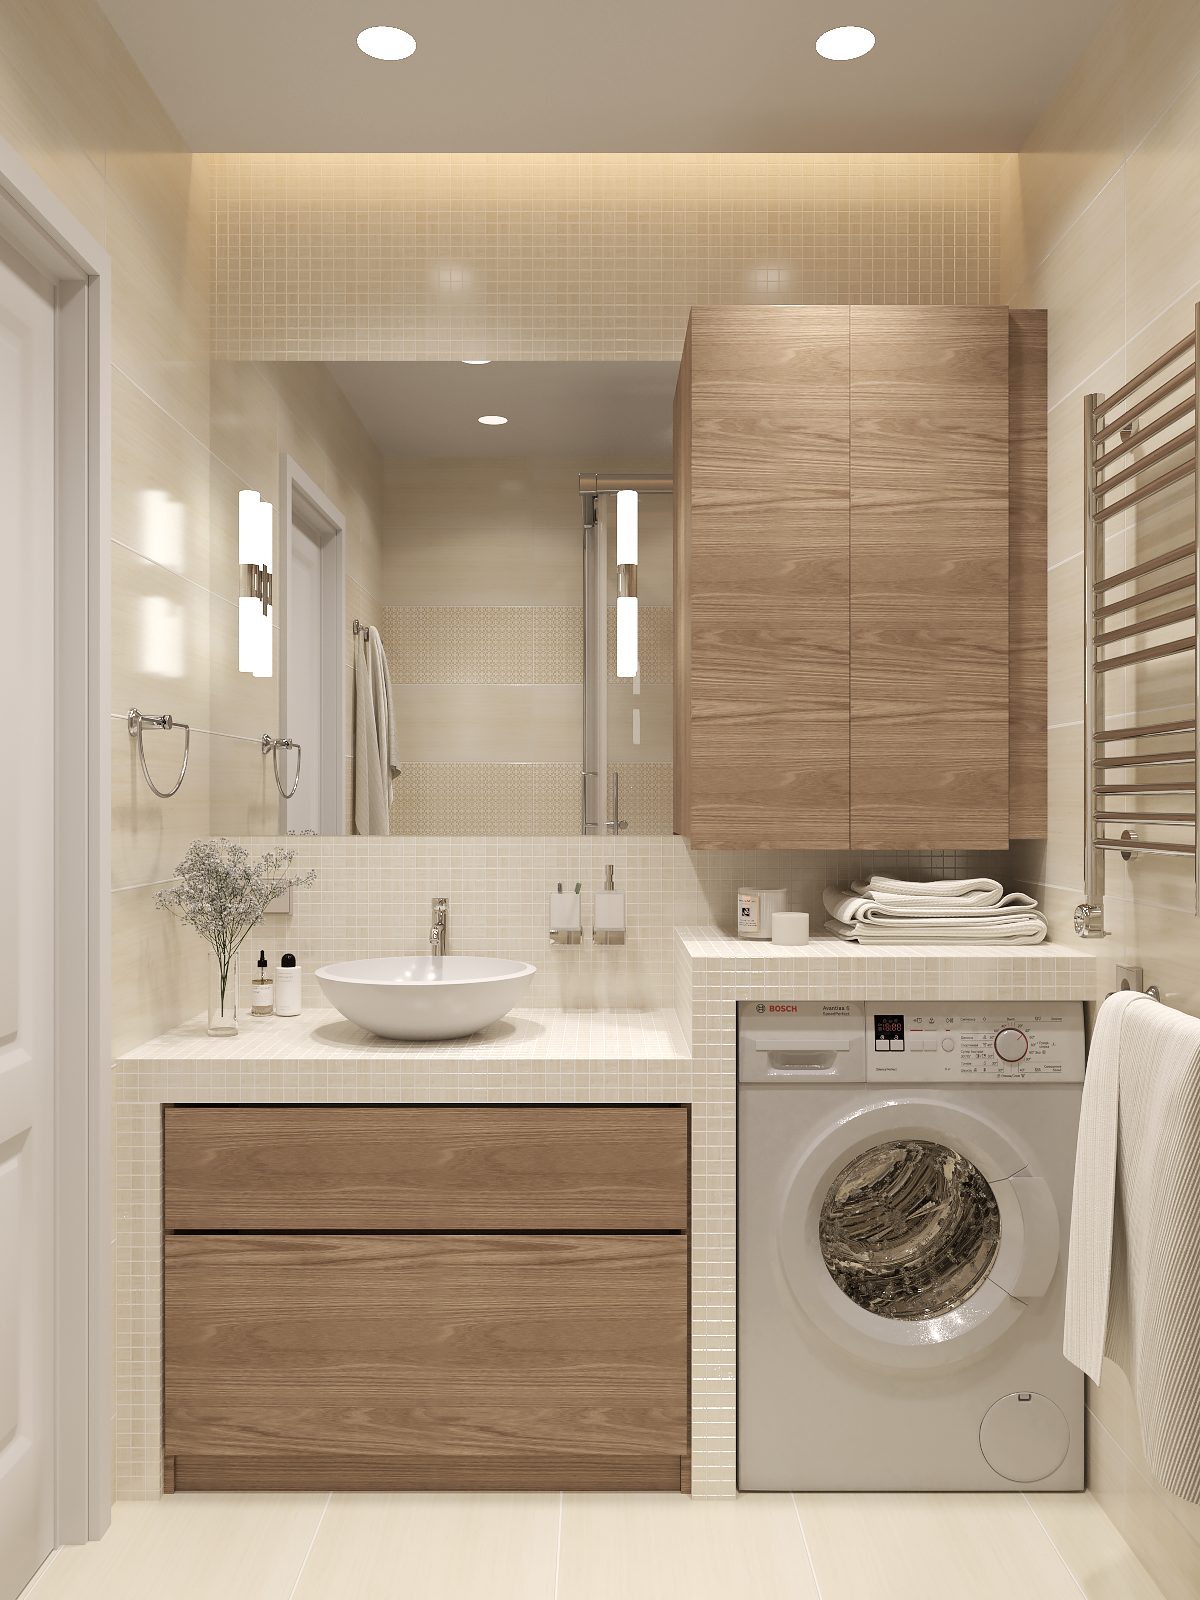 Very Neat Bathroom Layout With The Washing Machine Washing Machine Is Exposed But Neatly Tucked